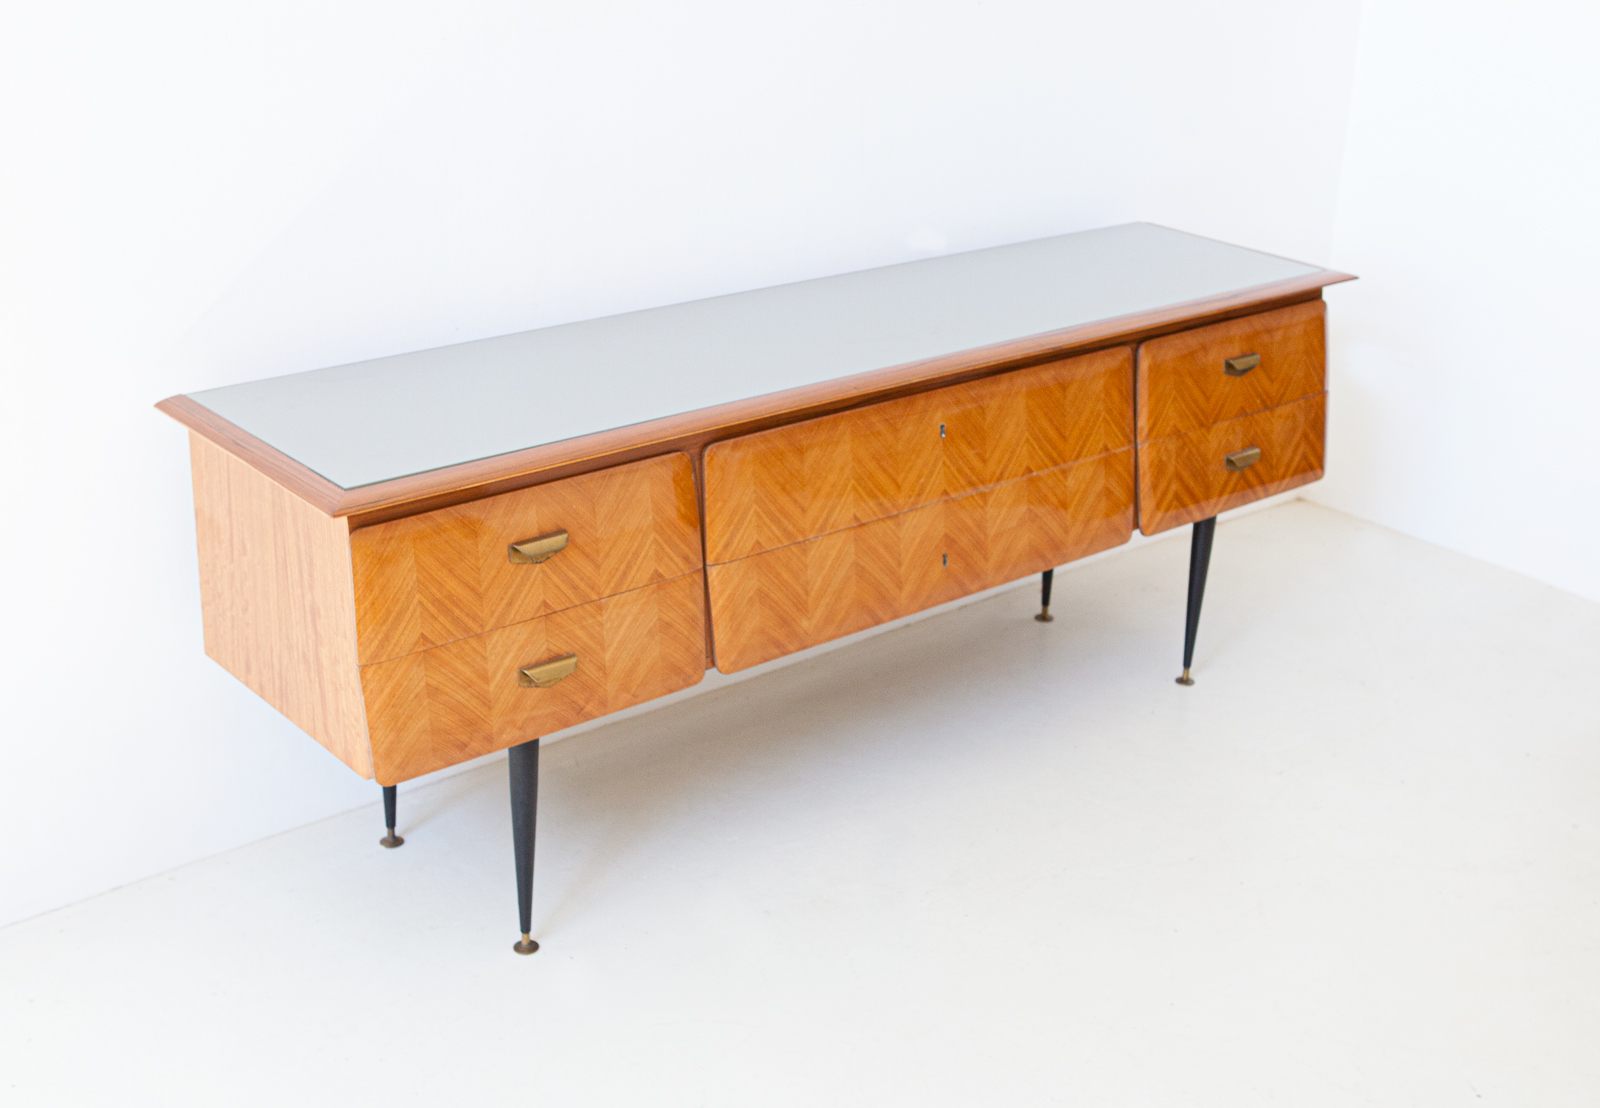 1950s-itaian-blond-mahogany-chest-of-drawers-2-st124